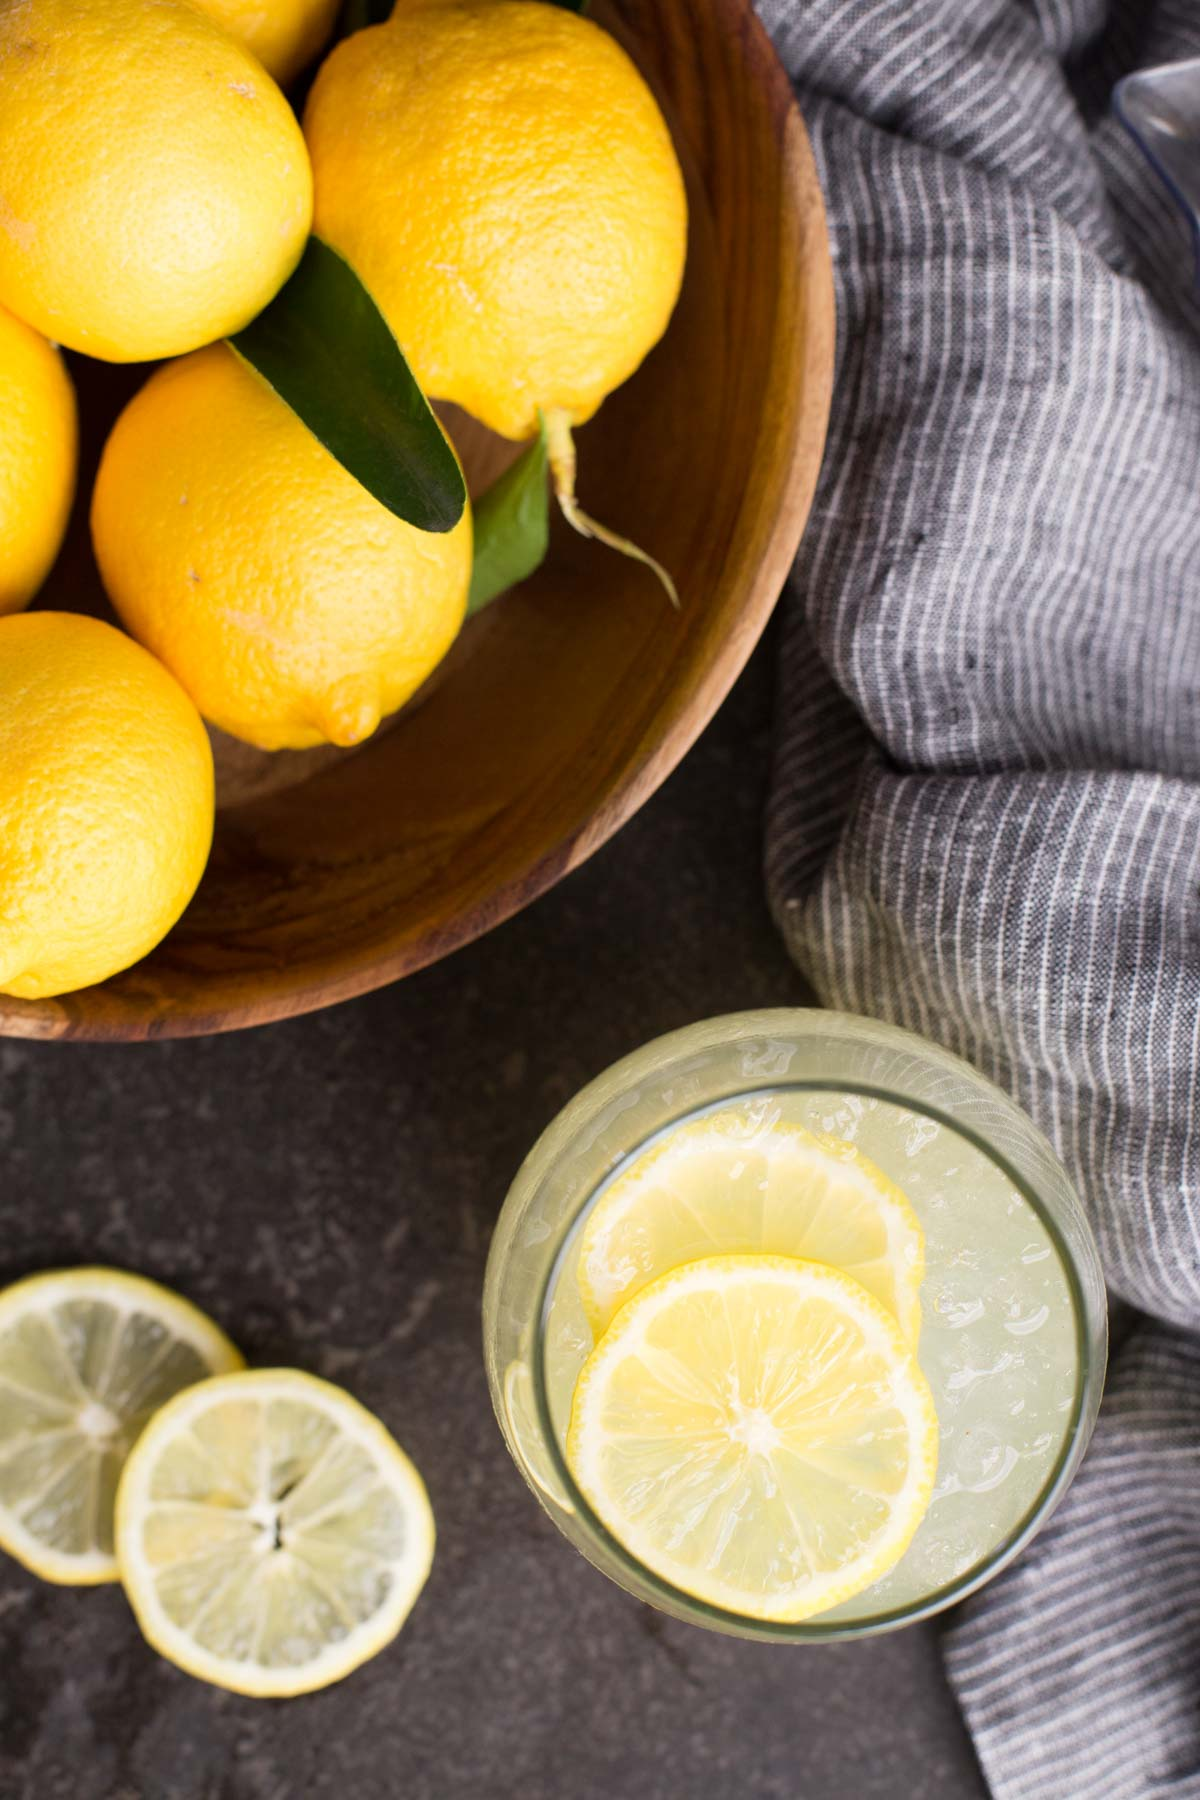 Wooden bowl of freshly picked lemons and a glass of lemonade poured.